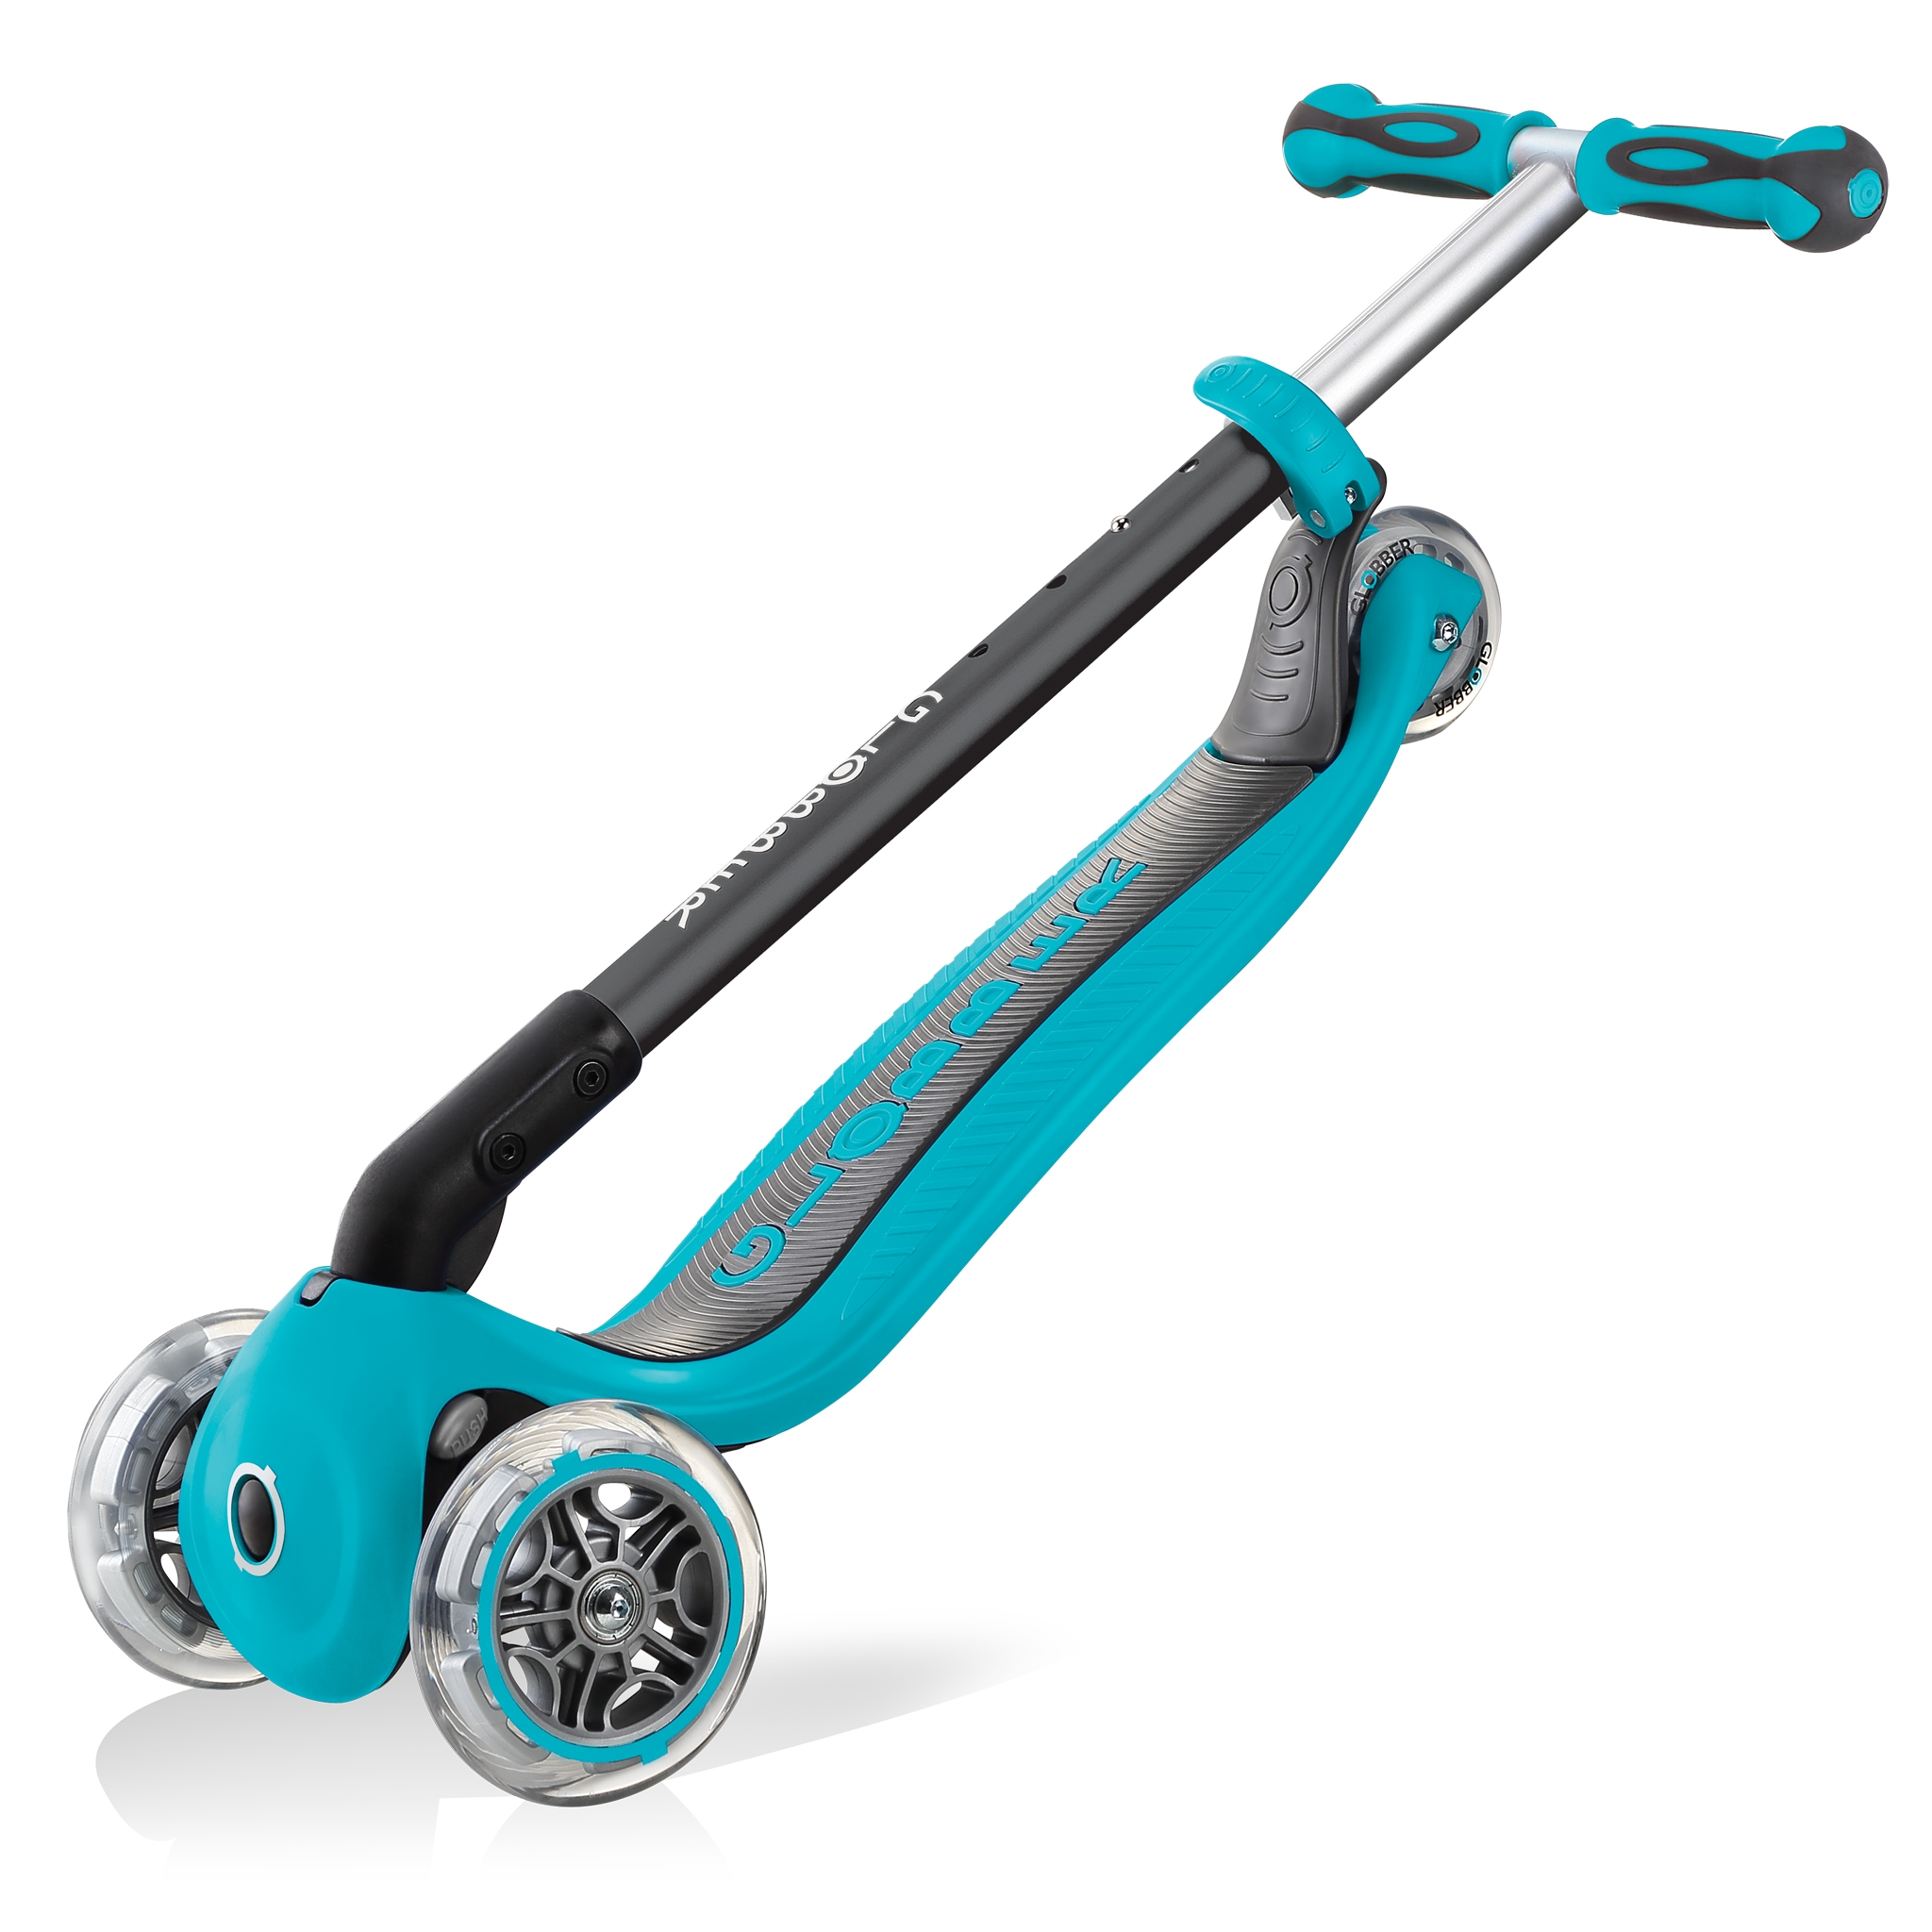 GO-UP-DELUXE-PLAY-ride-on-walking-bike-scooter-with-light-and-sound-module-trolley-mode-compatible-teal 5